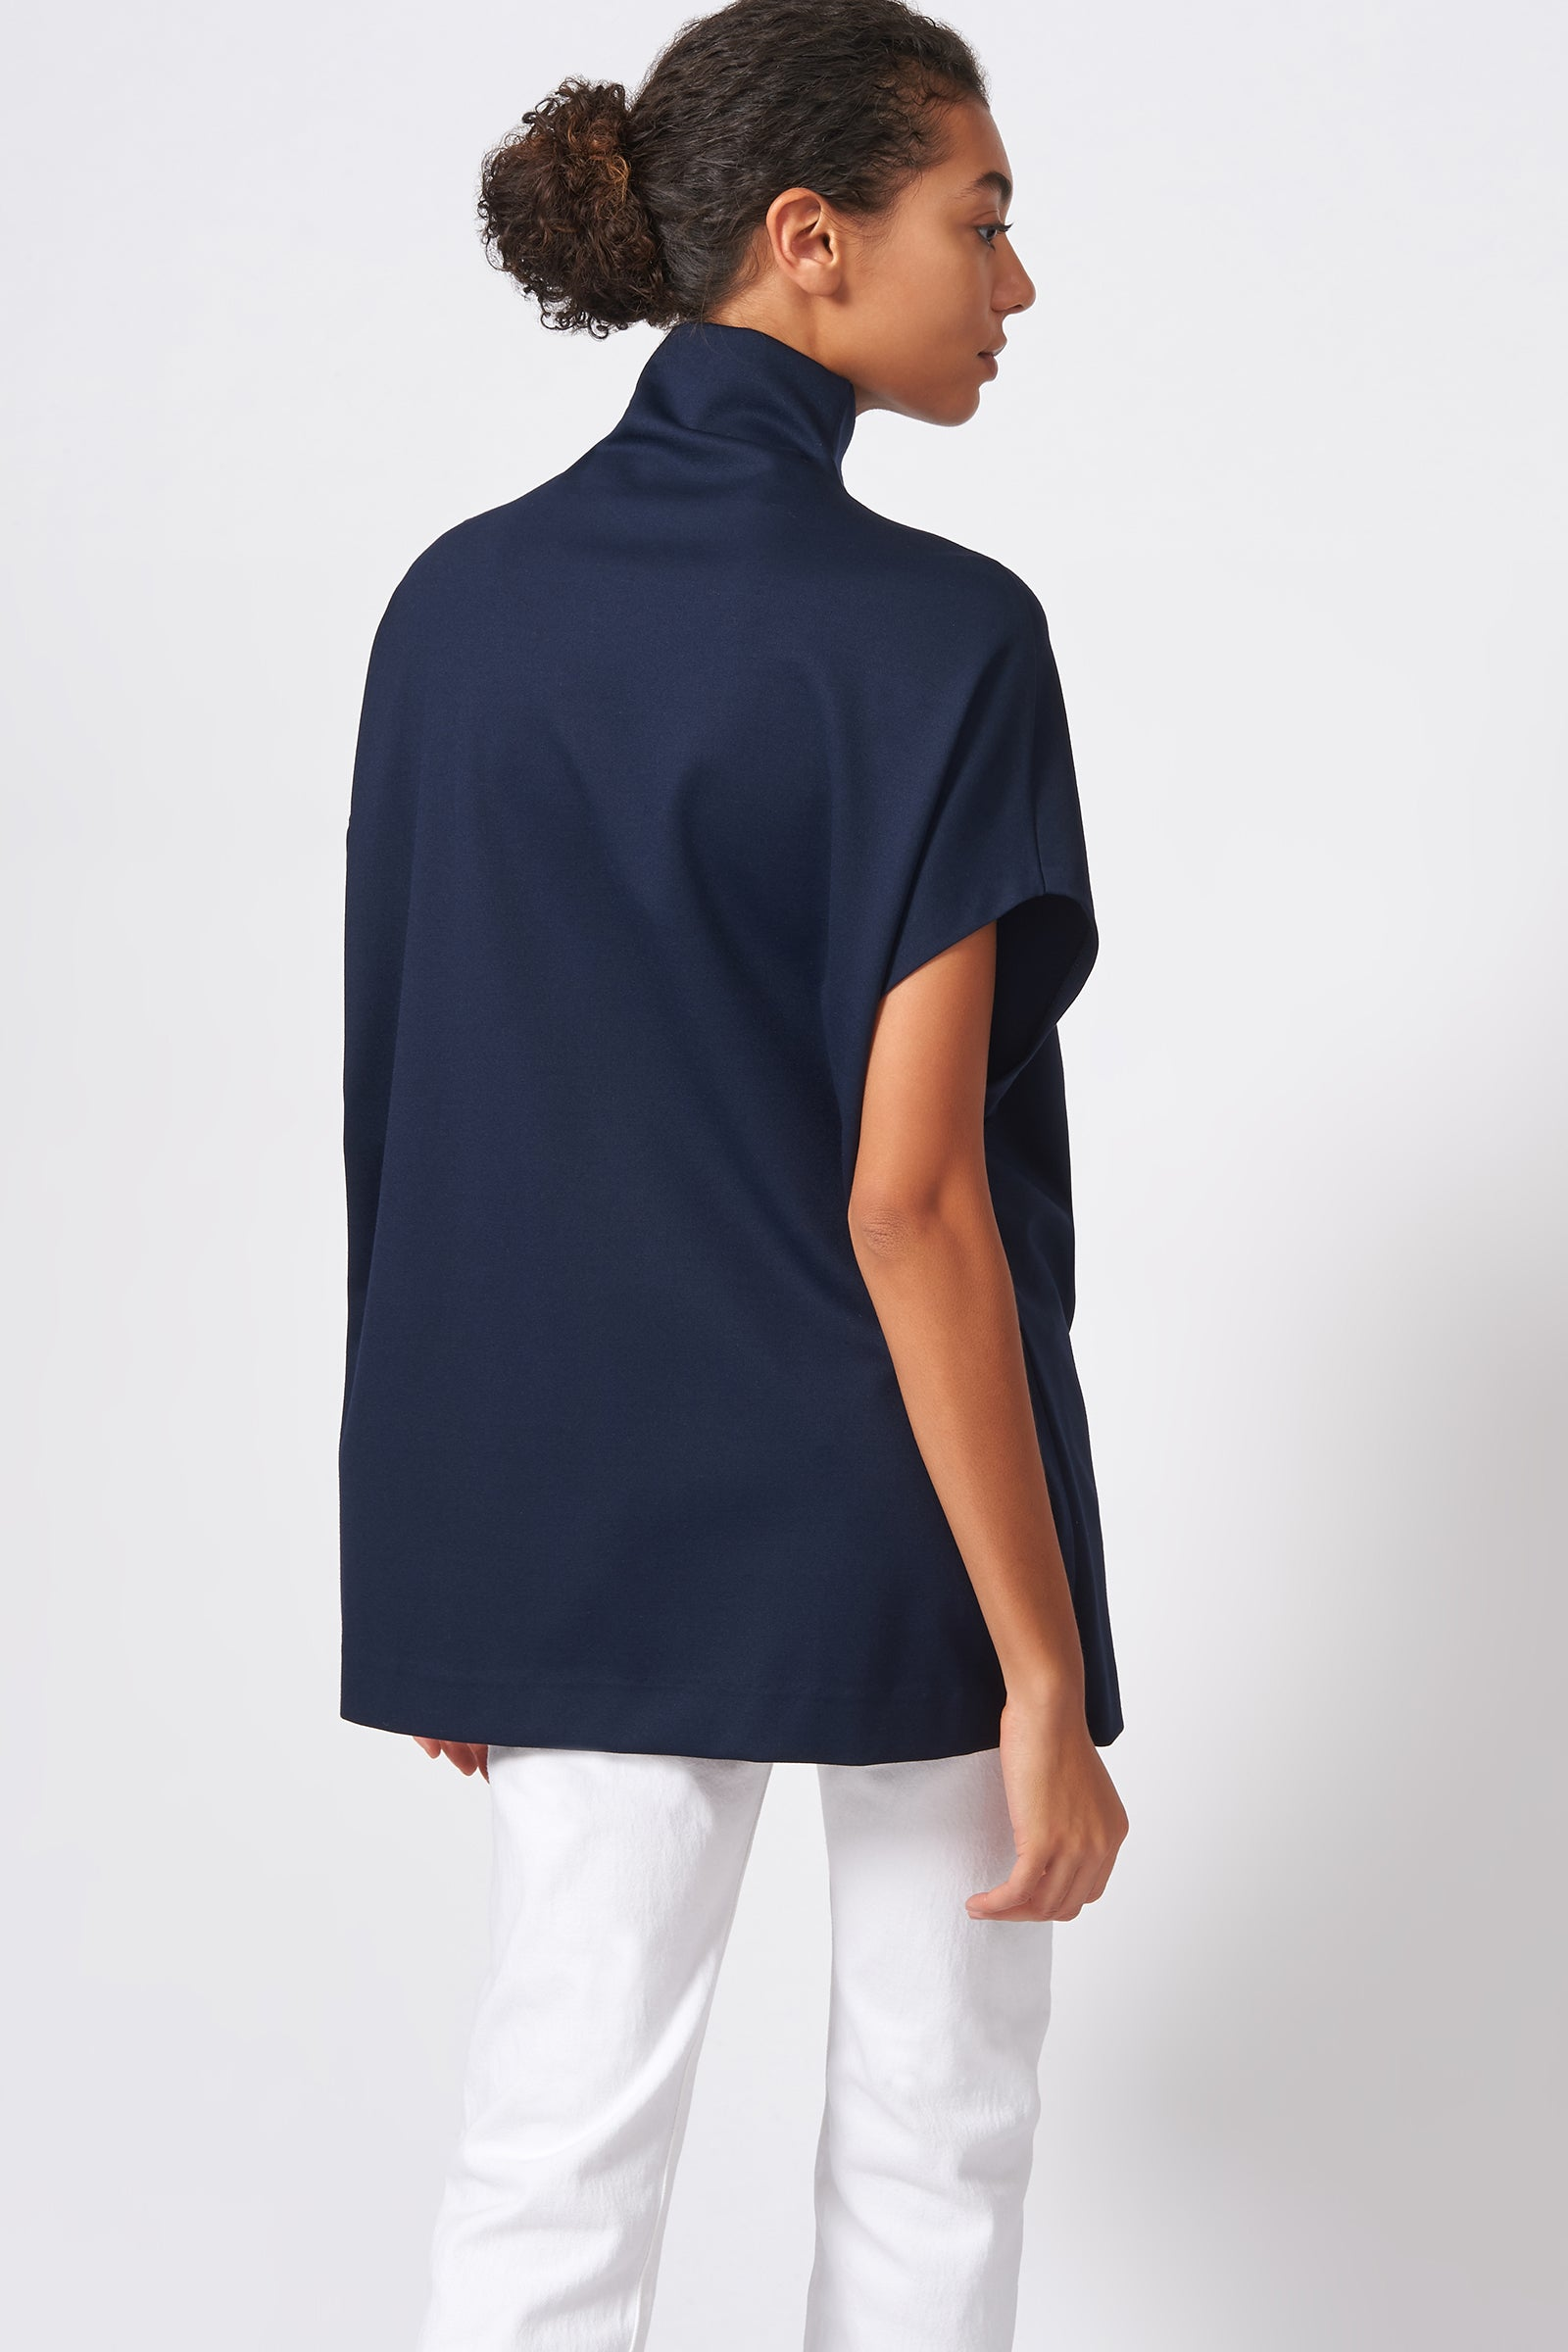 Kal Rieman Ponte Funnelneck in Navy on Model Front View